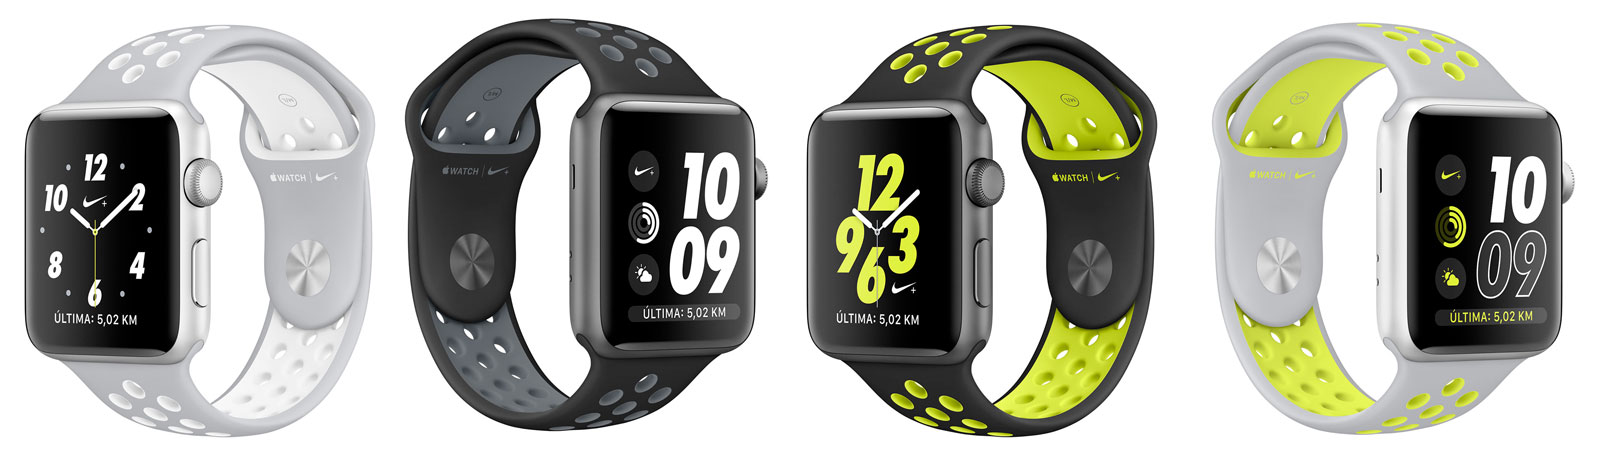 Colores del Apple™ Watch dos Nike+